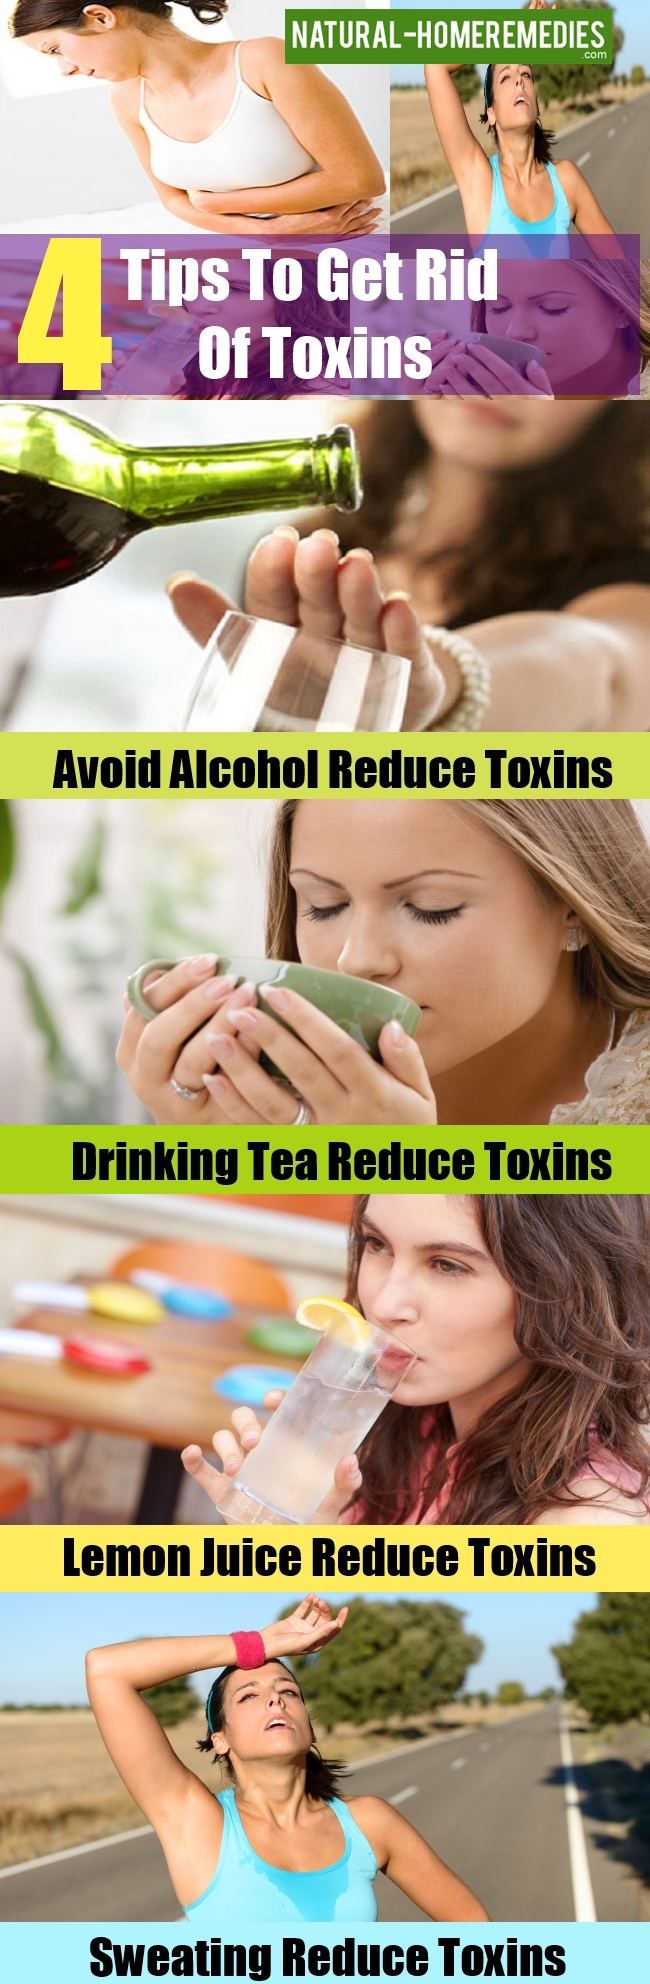 Tips To Get Rid Of Toxins